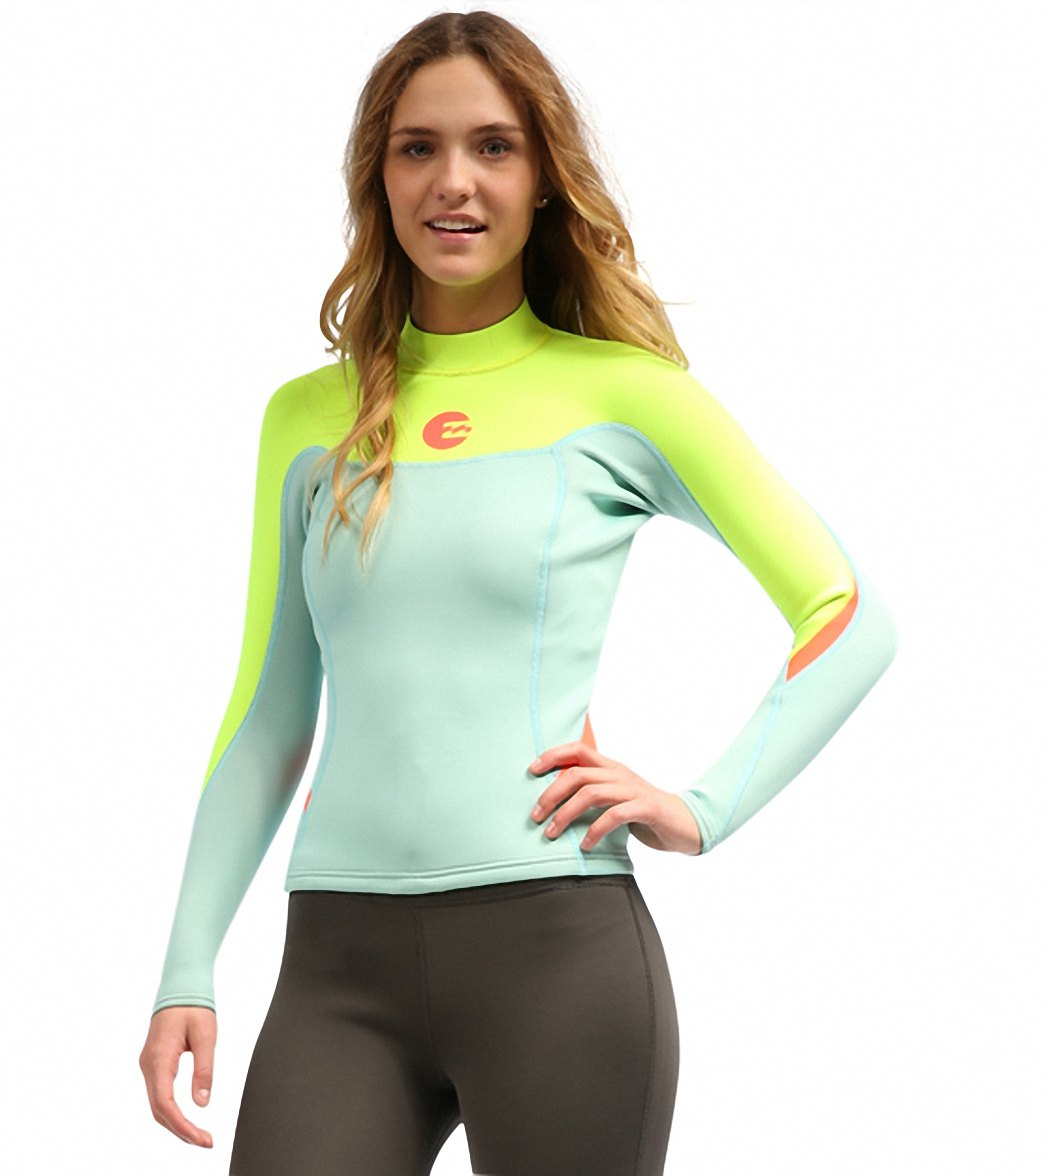 c7a4a41ce2 Billabong Women s 2MM Synergy L S Jacket at SwimOutlet.com - Free ...